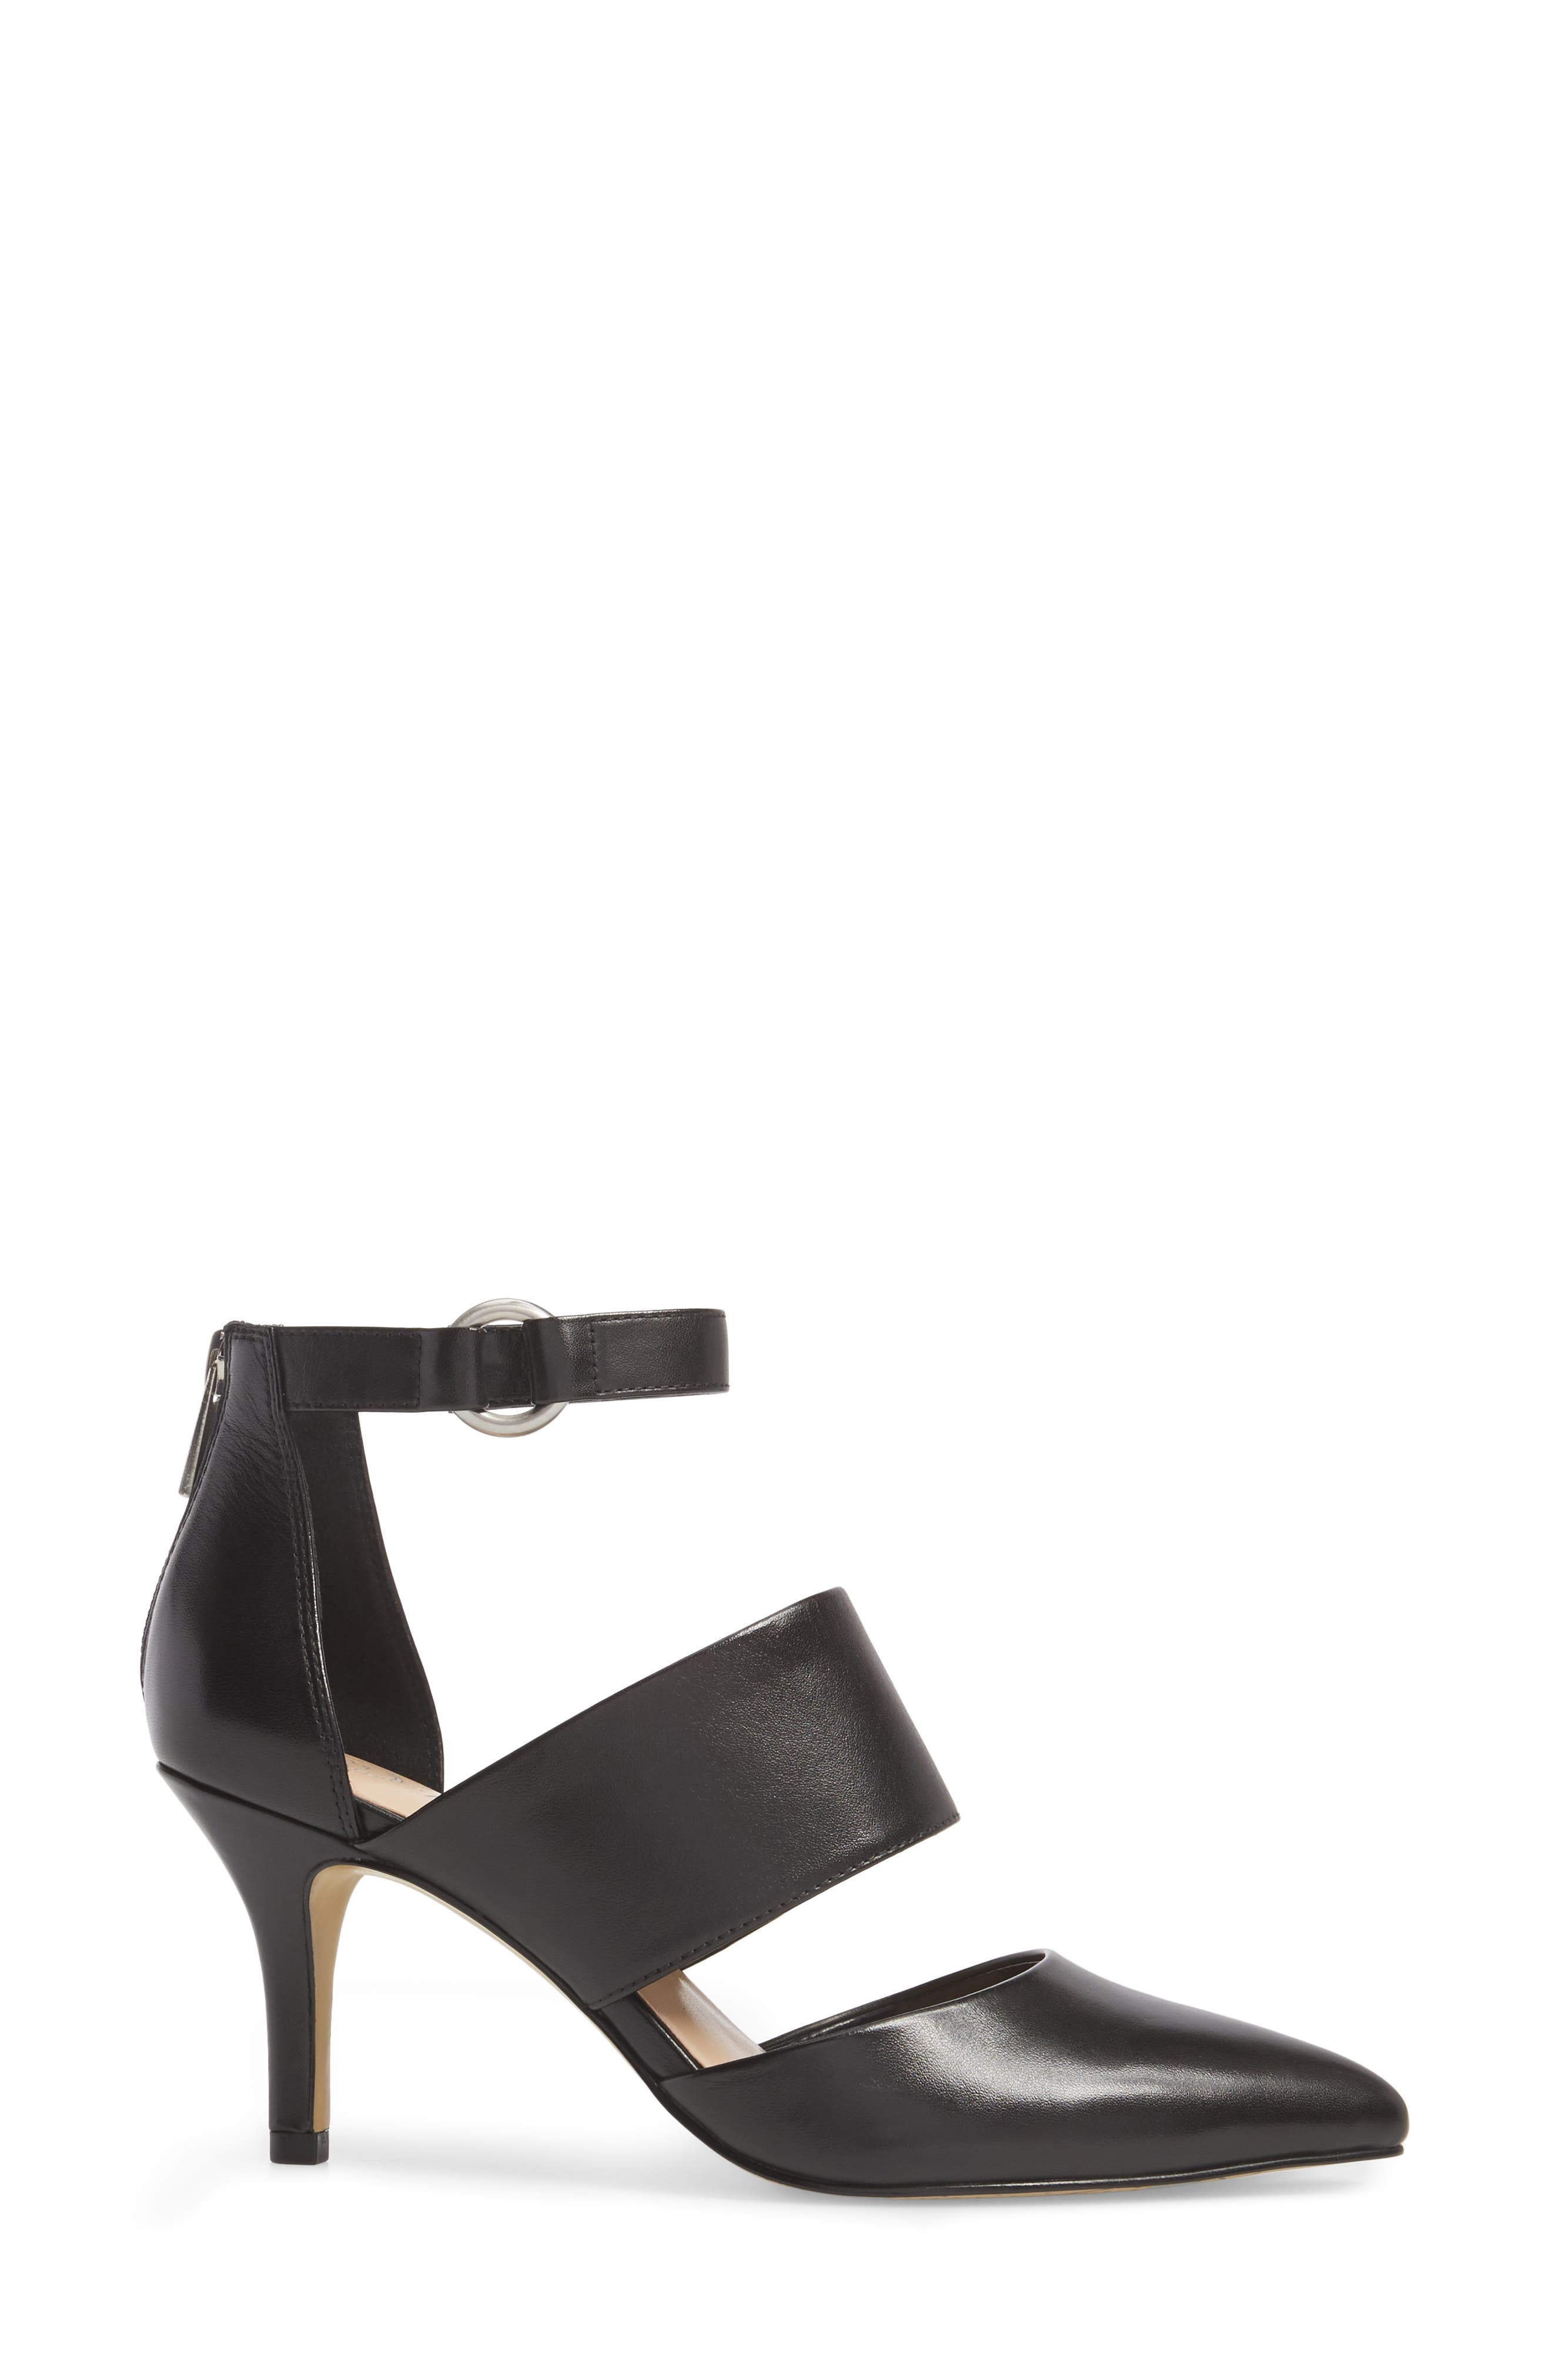 Diana Pump,                             Alternate thumbnail 3, color,                             Black Leather